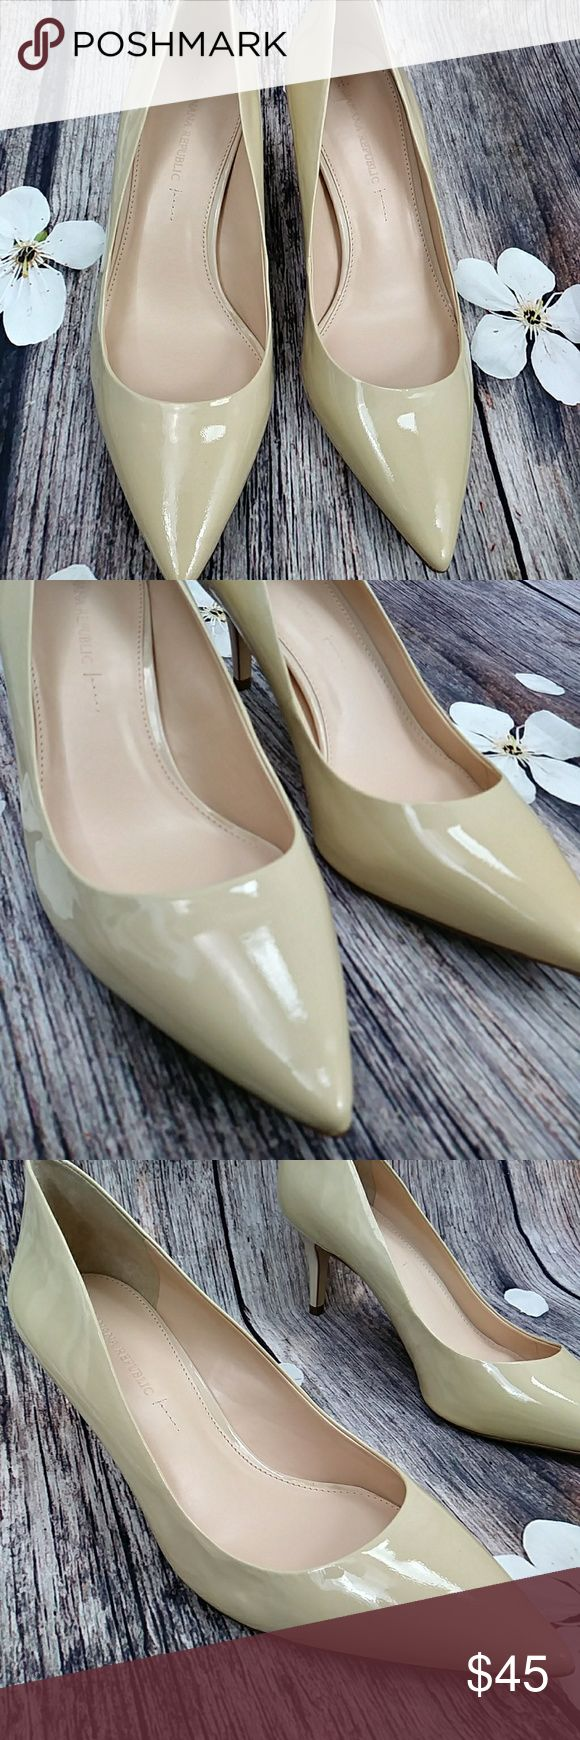 """Banana Republic  Pantent Crema Kinsley Heels Add a little patent to your spring on the low with this fab color...great for skinny jeans if you wanna go low on the heels...like new..worn once..no  marks..size 10..heel  height """"3"""" Banana Republic Shoes Heels"""